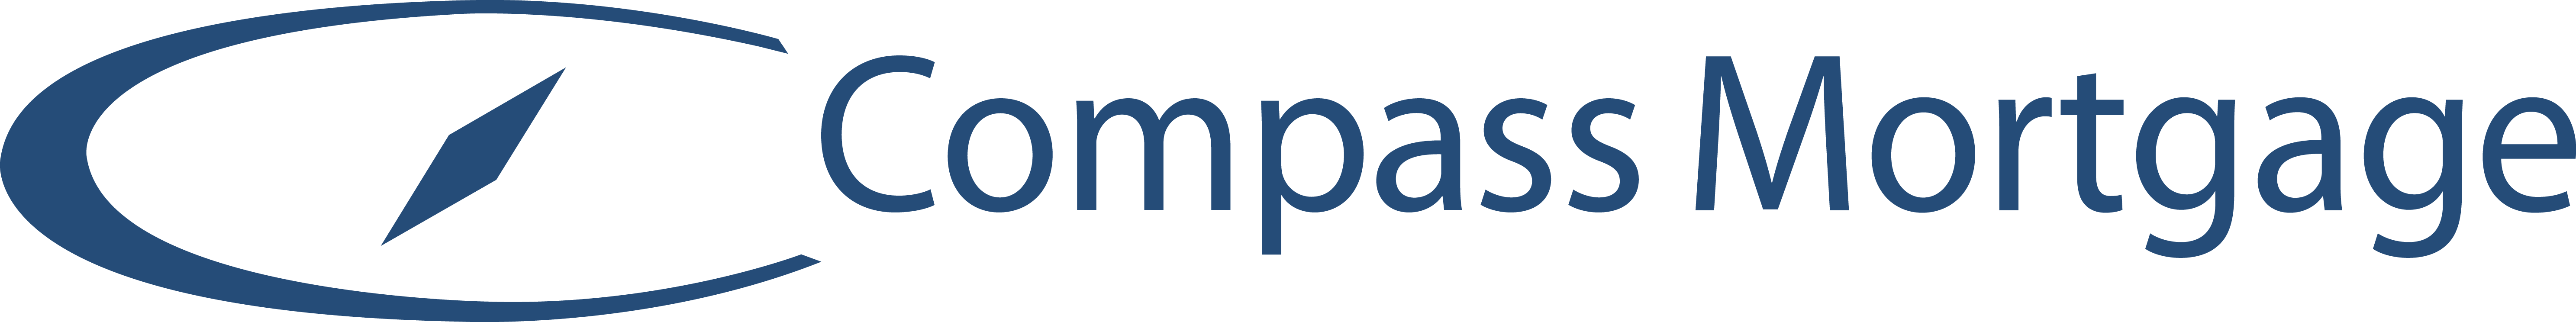 Compass Mortgage, Inc